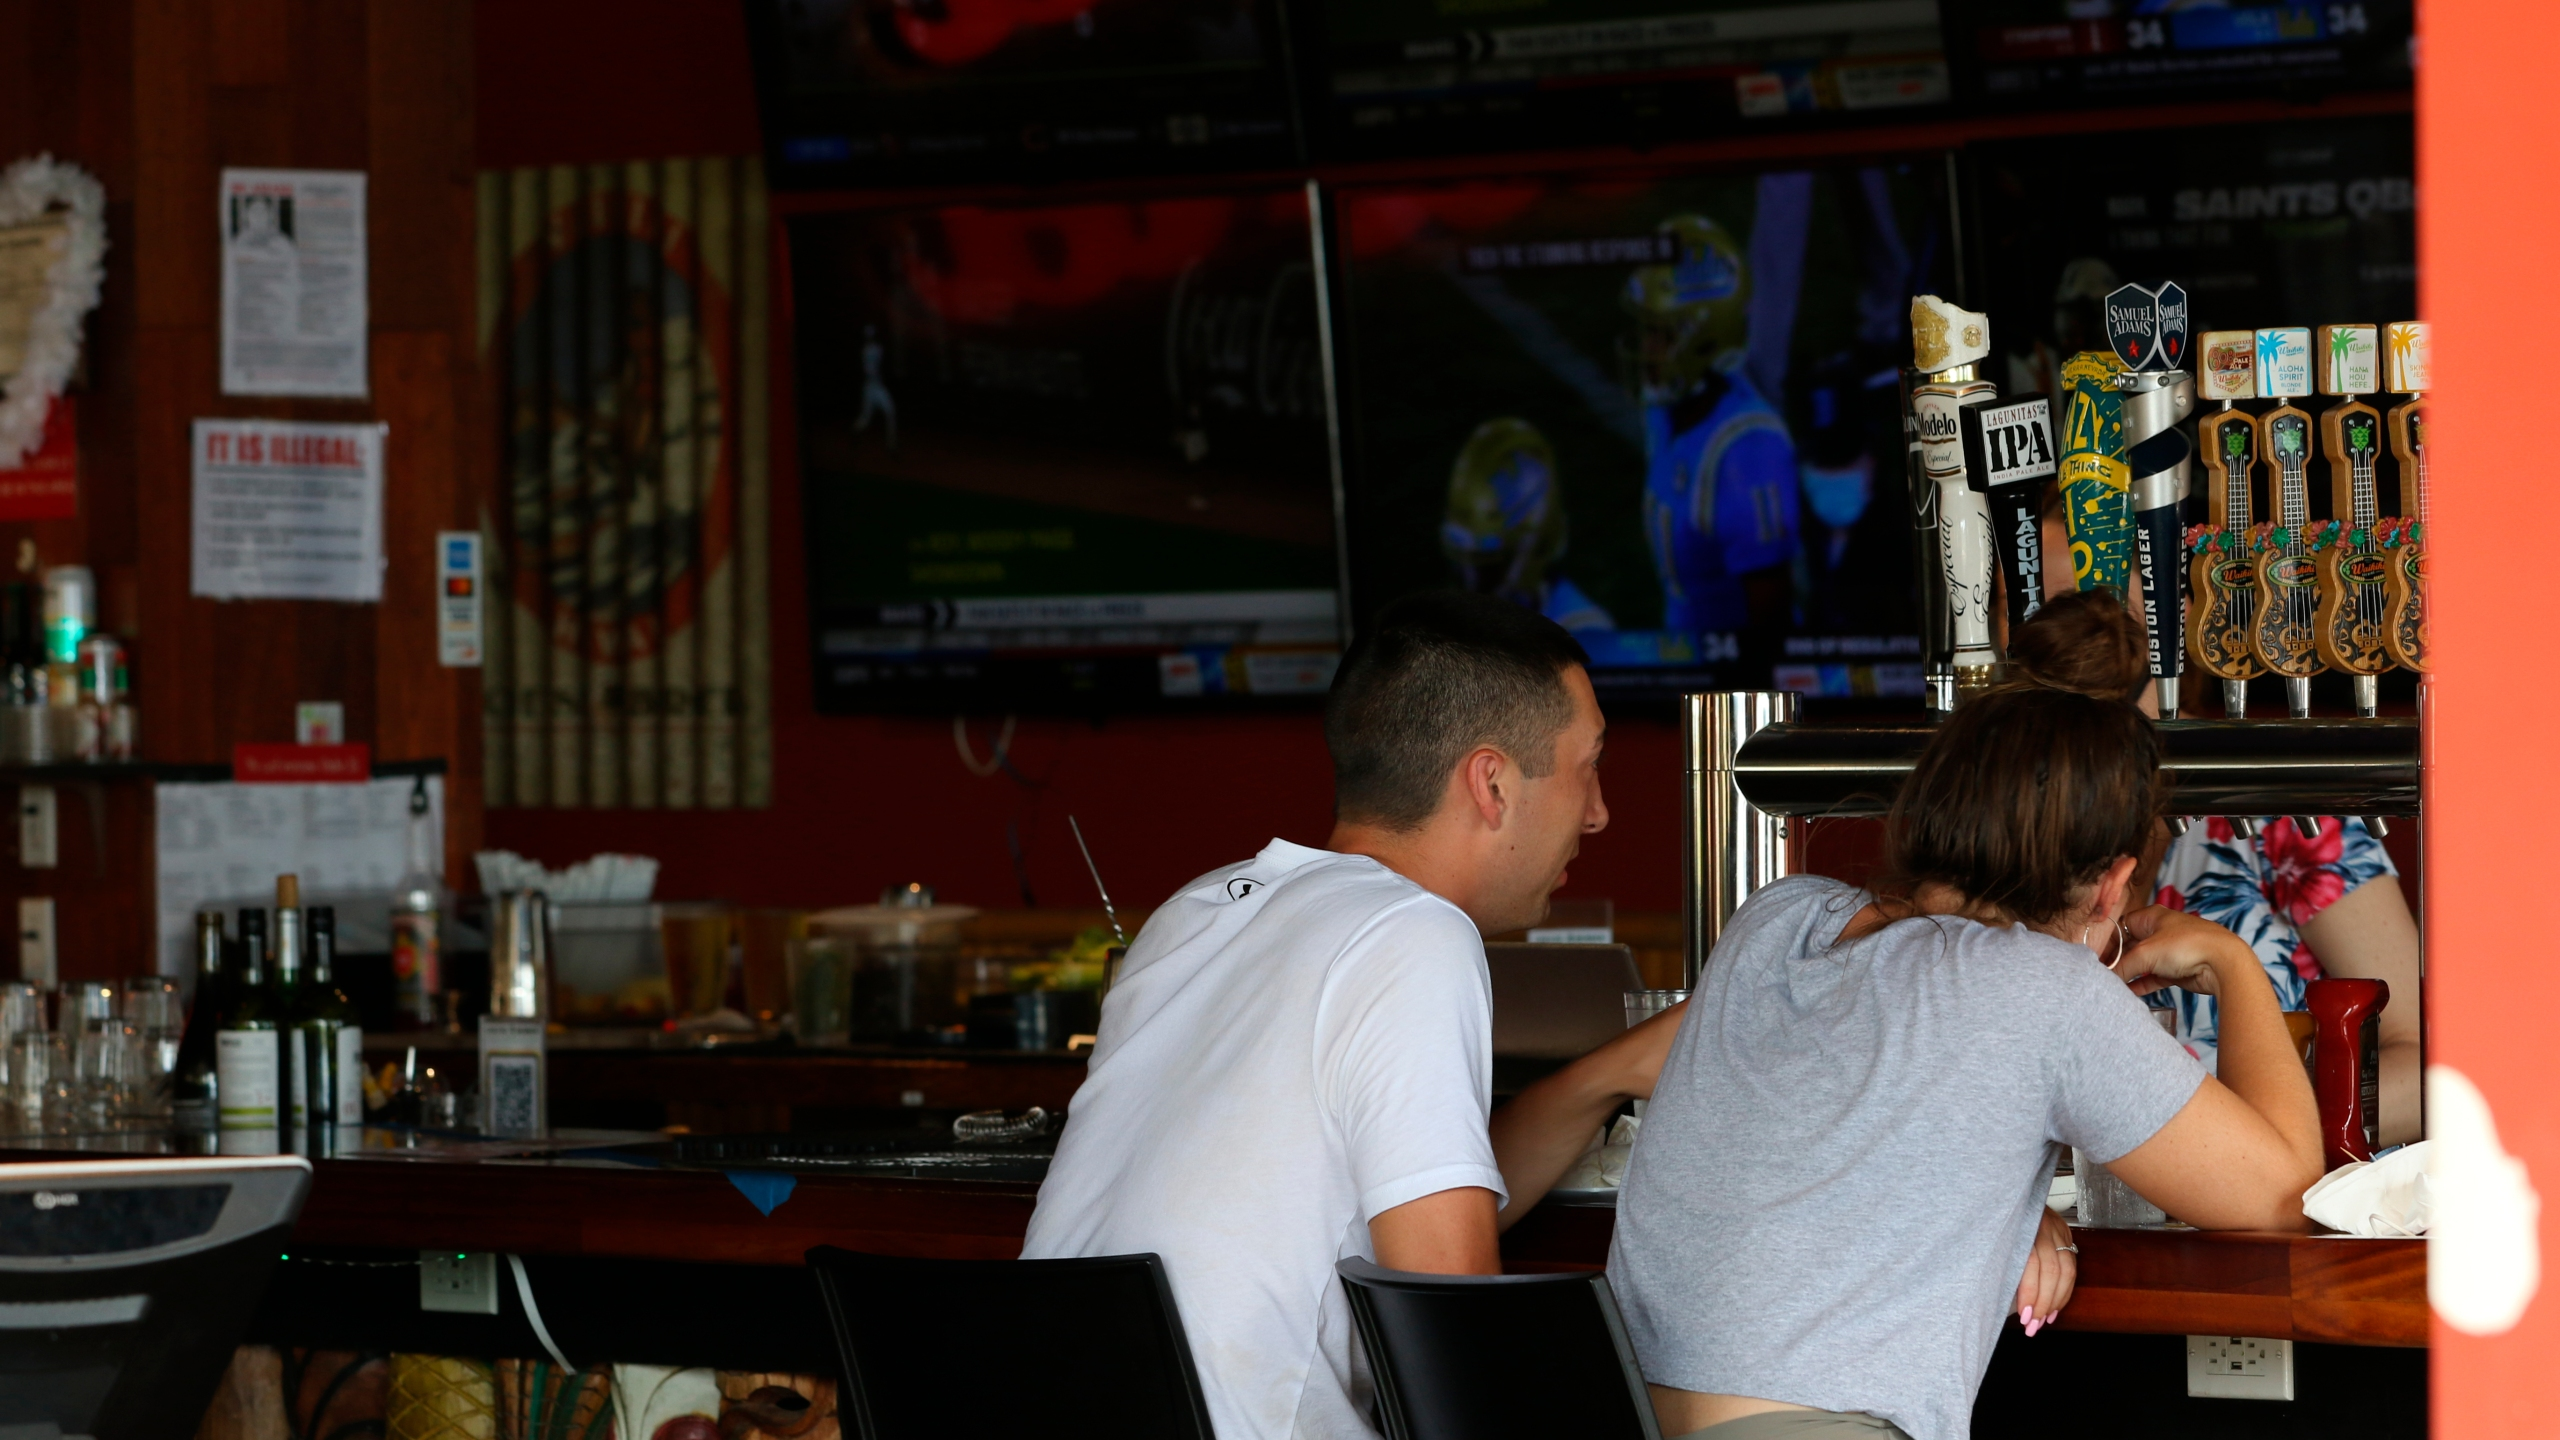 In this Aug. 24, 2021, photo, people sit at a Waikiki bar in Honolulu. The mayor of Honolulu says starting Sept. 13, 2021, the city will require patrons of restaurants, bars, museums, theaters and other establishments to show proof of vaccination or a recent negative test for COVID-19. (AP Photo/Caleb Jones)